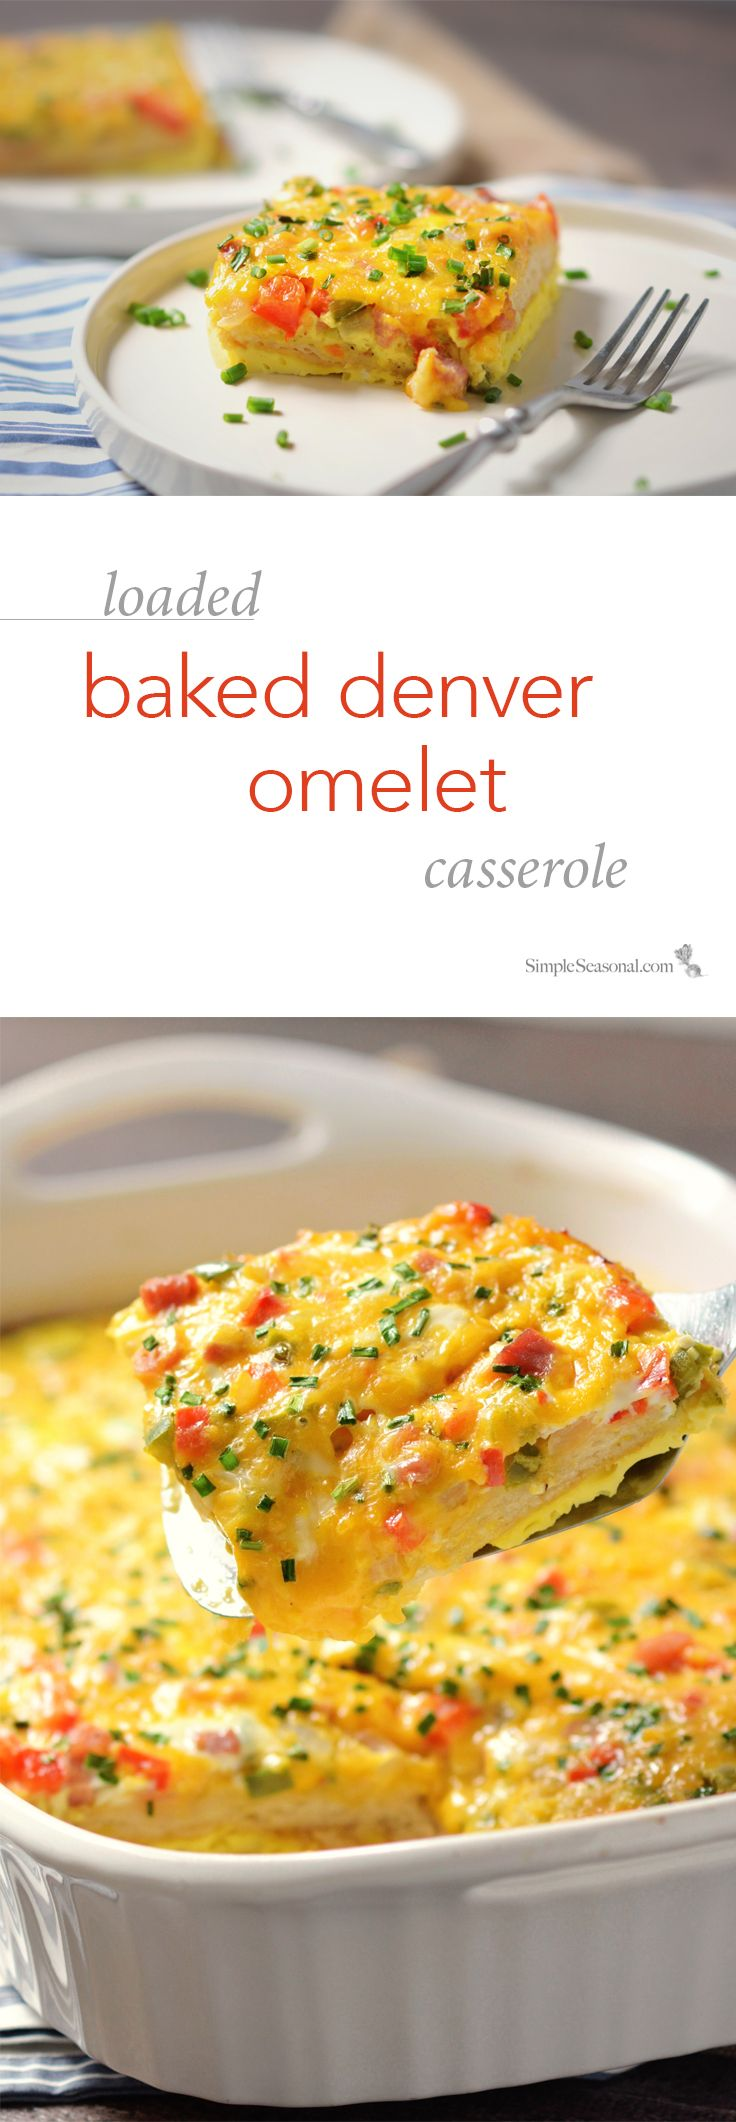 Loaded Baked Denver Omelet Casserole -Whether you're on your way to a potluck or just feeding a table full of hungry teenagers, this fun, cheesy, family-friendly dish is sure to be a hit!